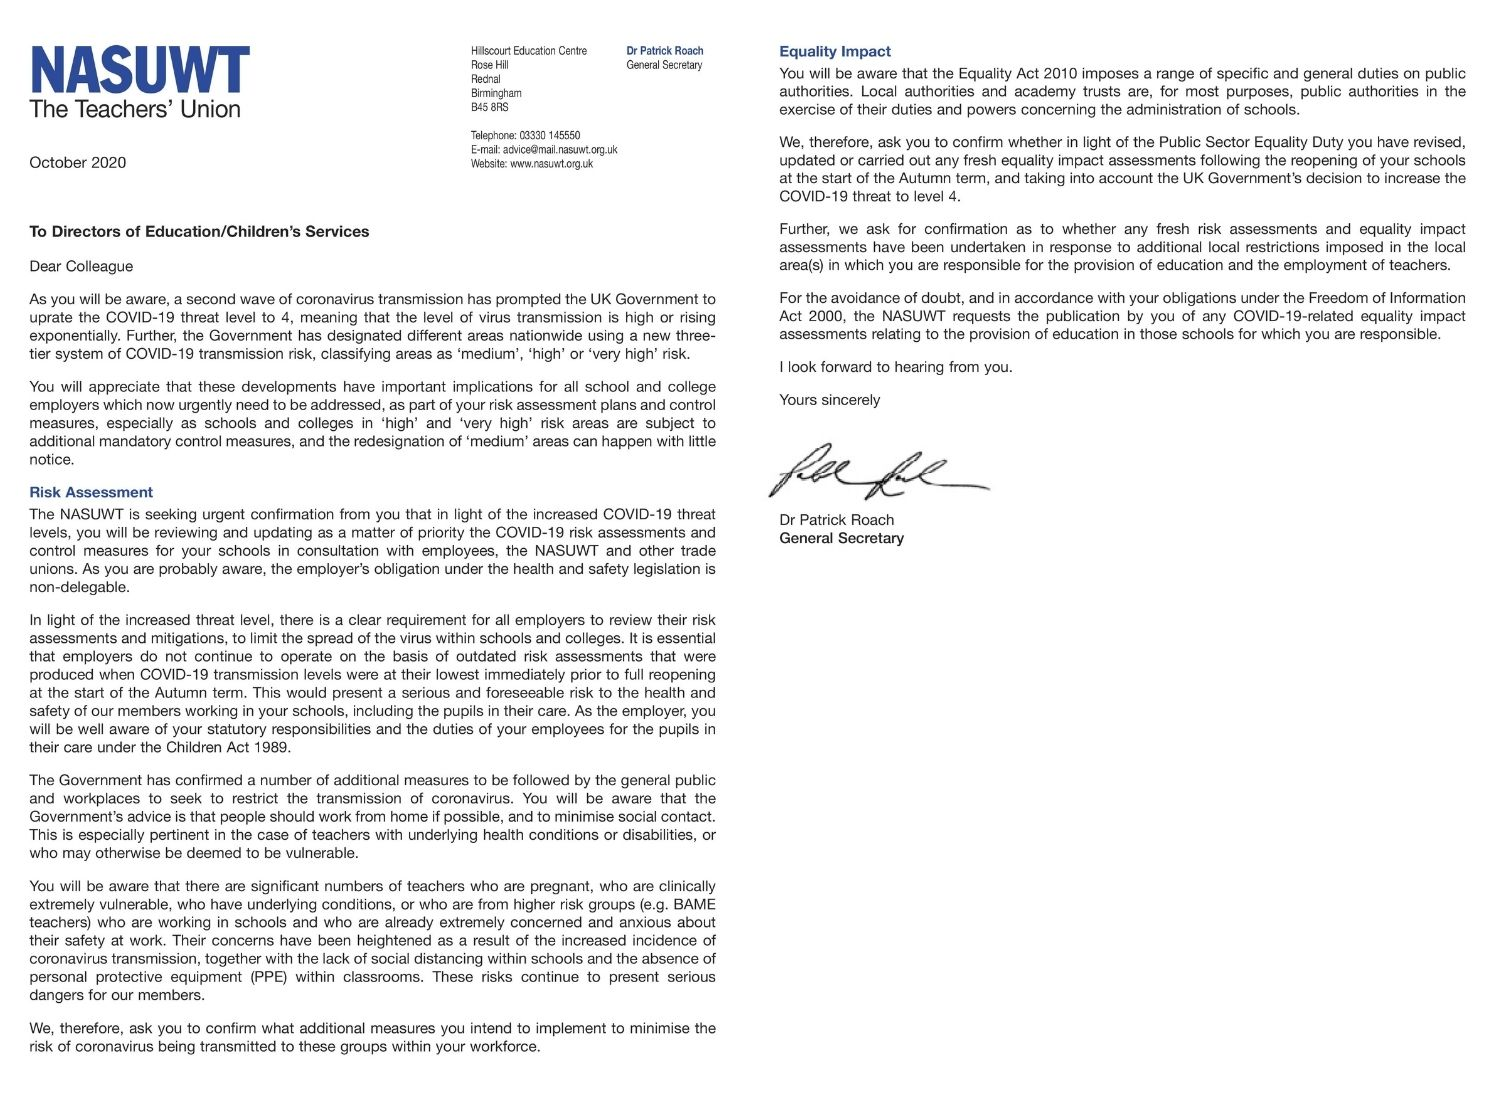 Dr Patrick Roach's letter to councils urging them to carry out new risk assessments.